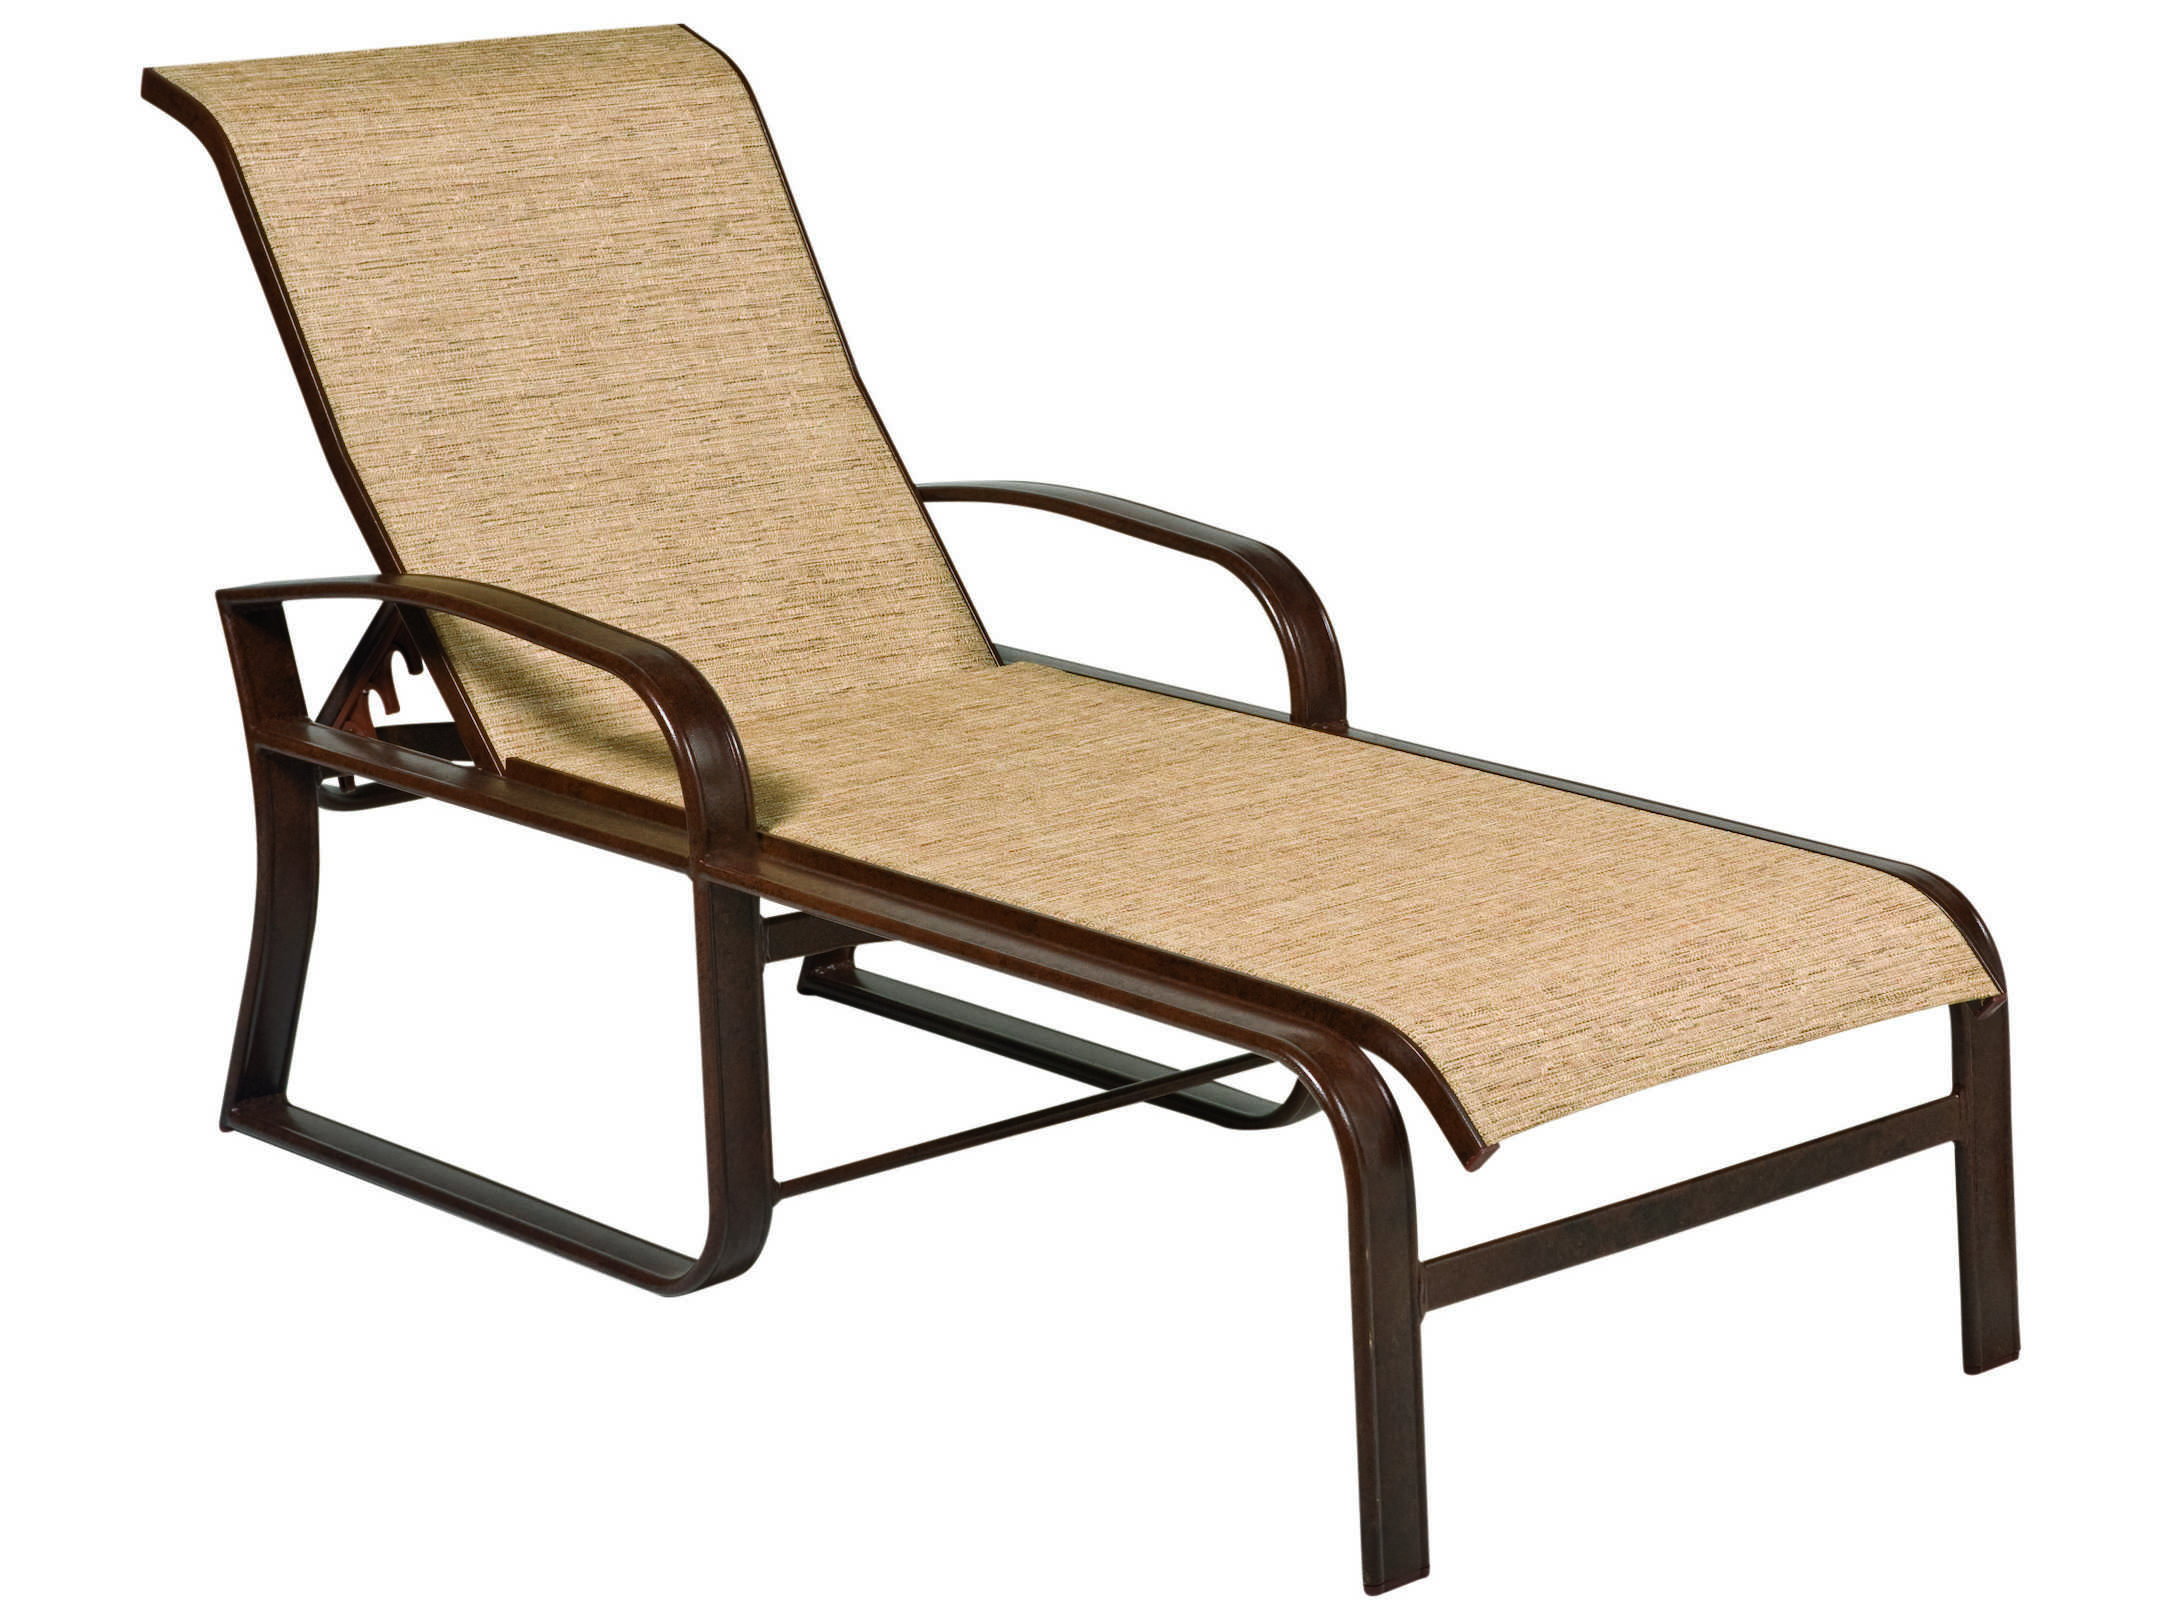 Woodard cayman isle sling aluminum adjustable chaise for Chaise lounge aluminum